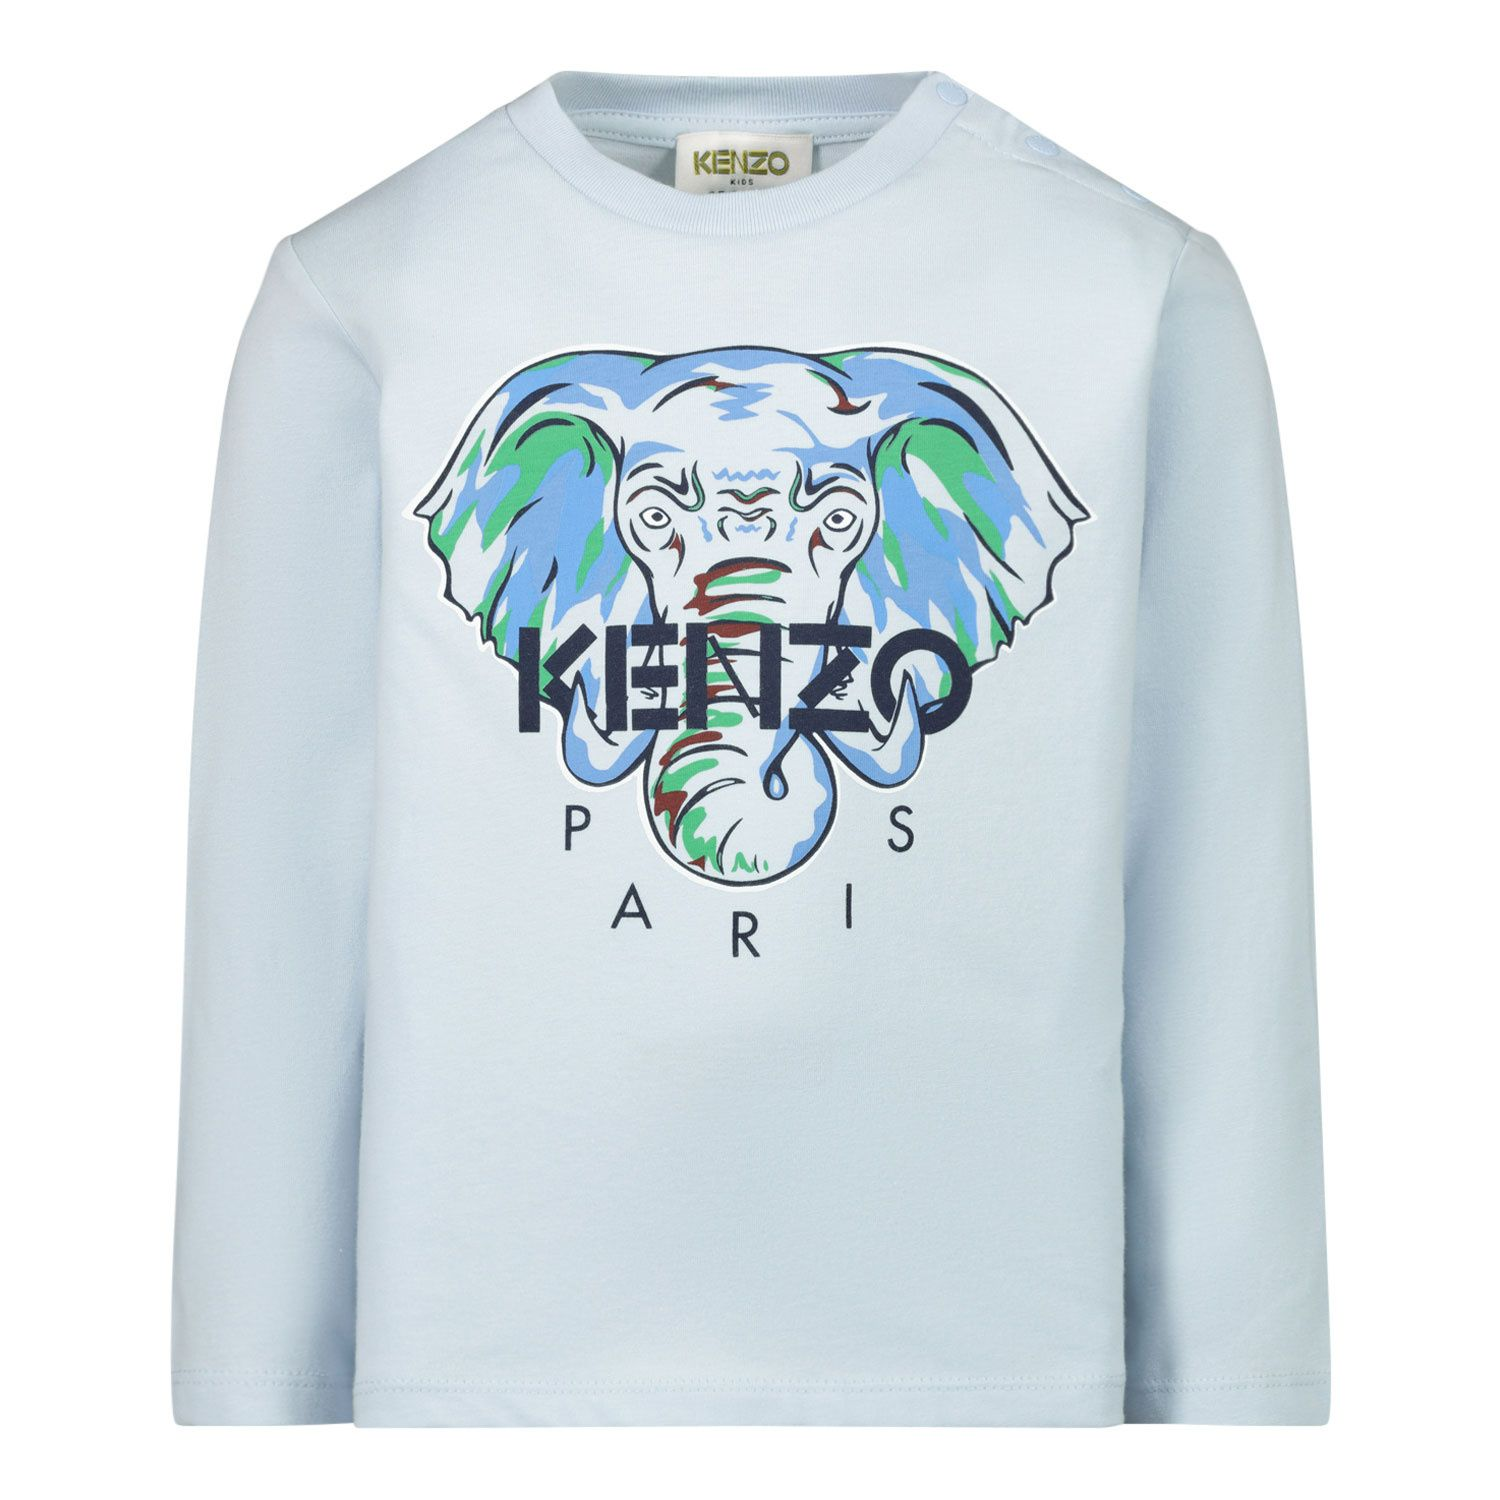 Picture of Kenzo KR10527 baby shirt light blue